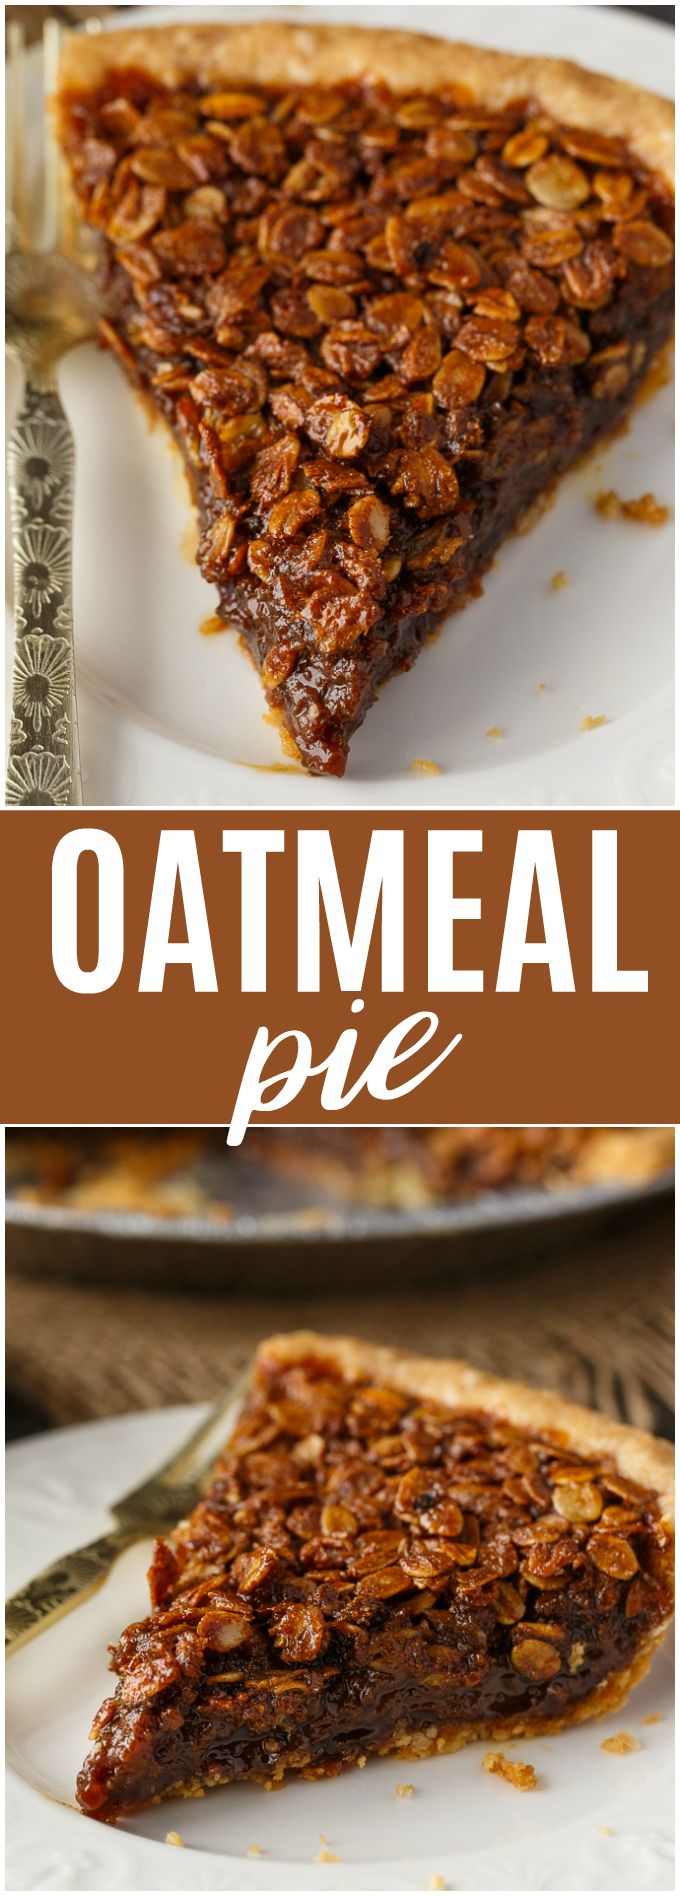 Oatmeal Pie - An old fashioned dessert just like Grandma used to make!